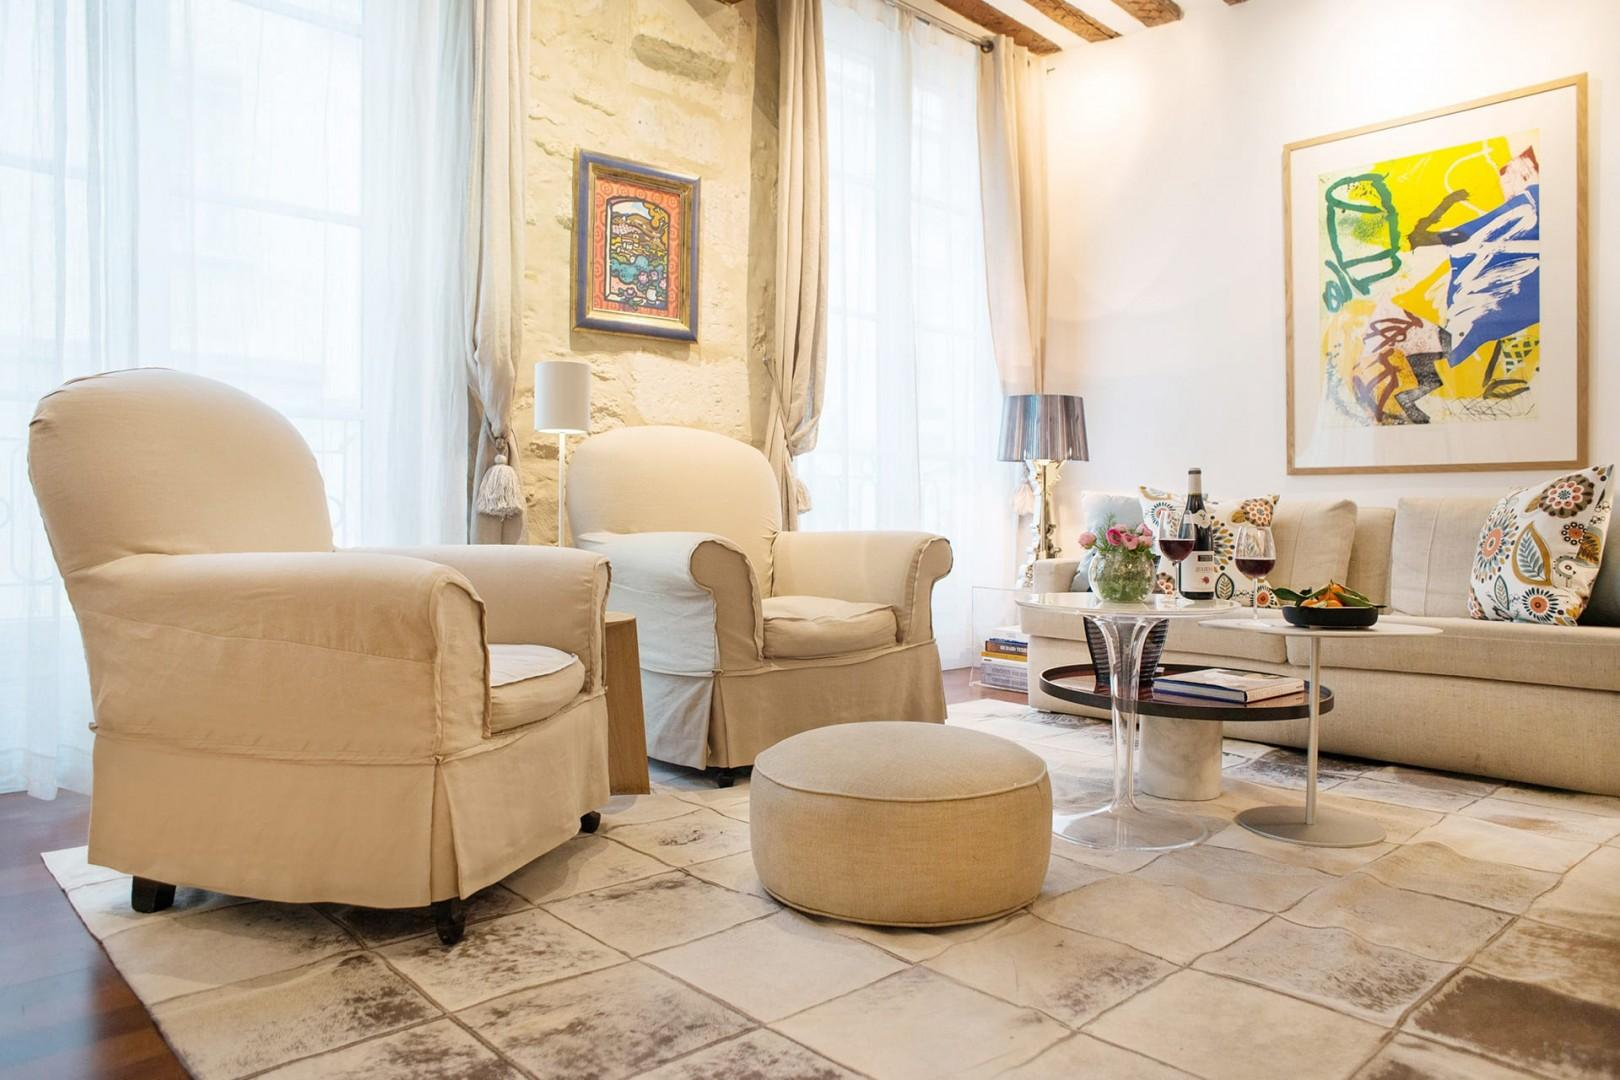 Welcome to the gorgeous and comfortable living room at the Morey!